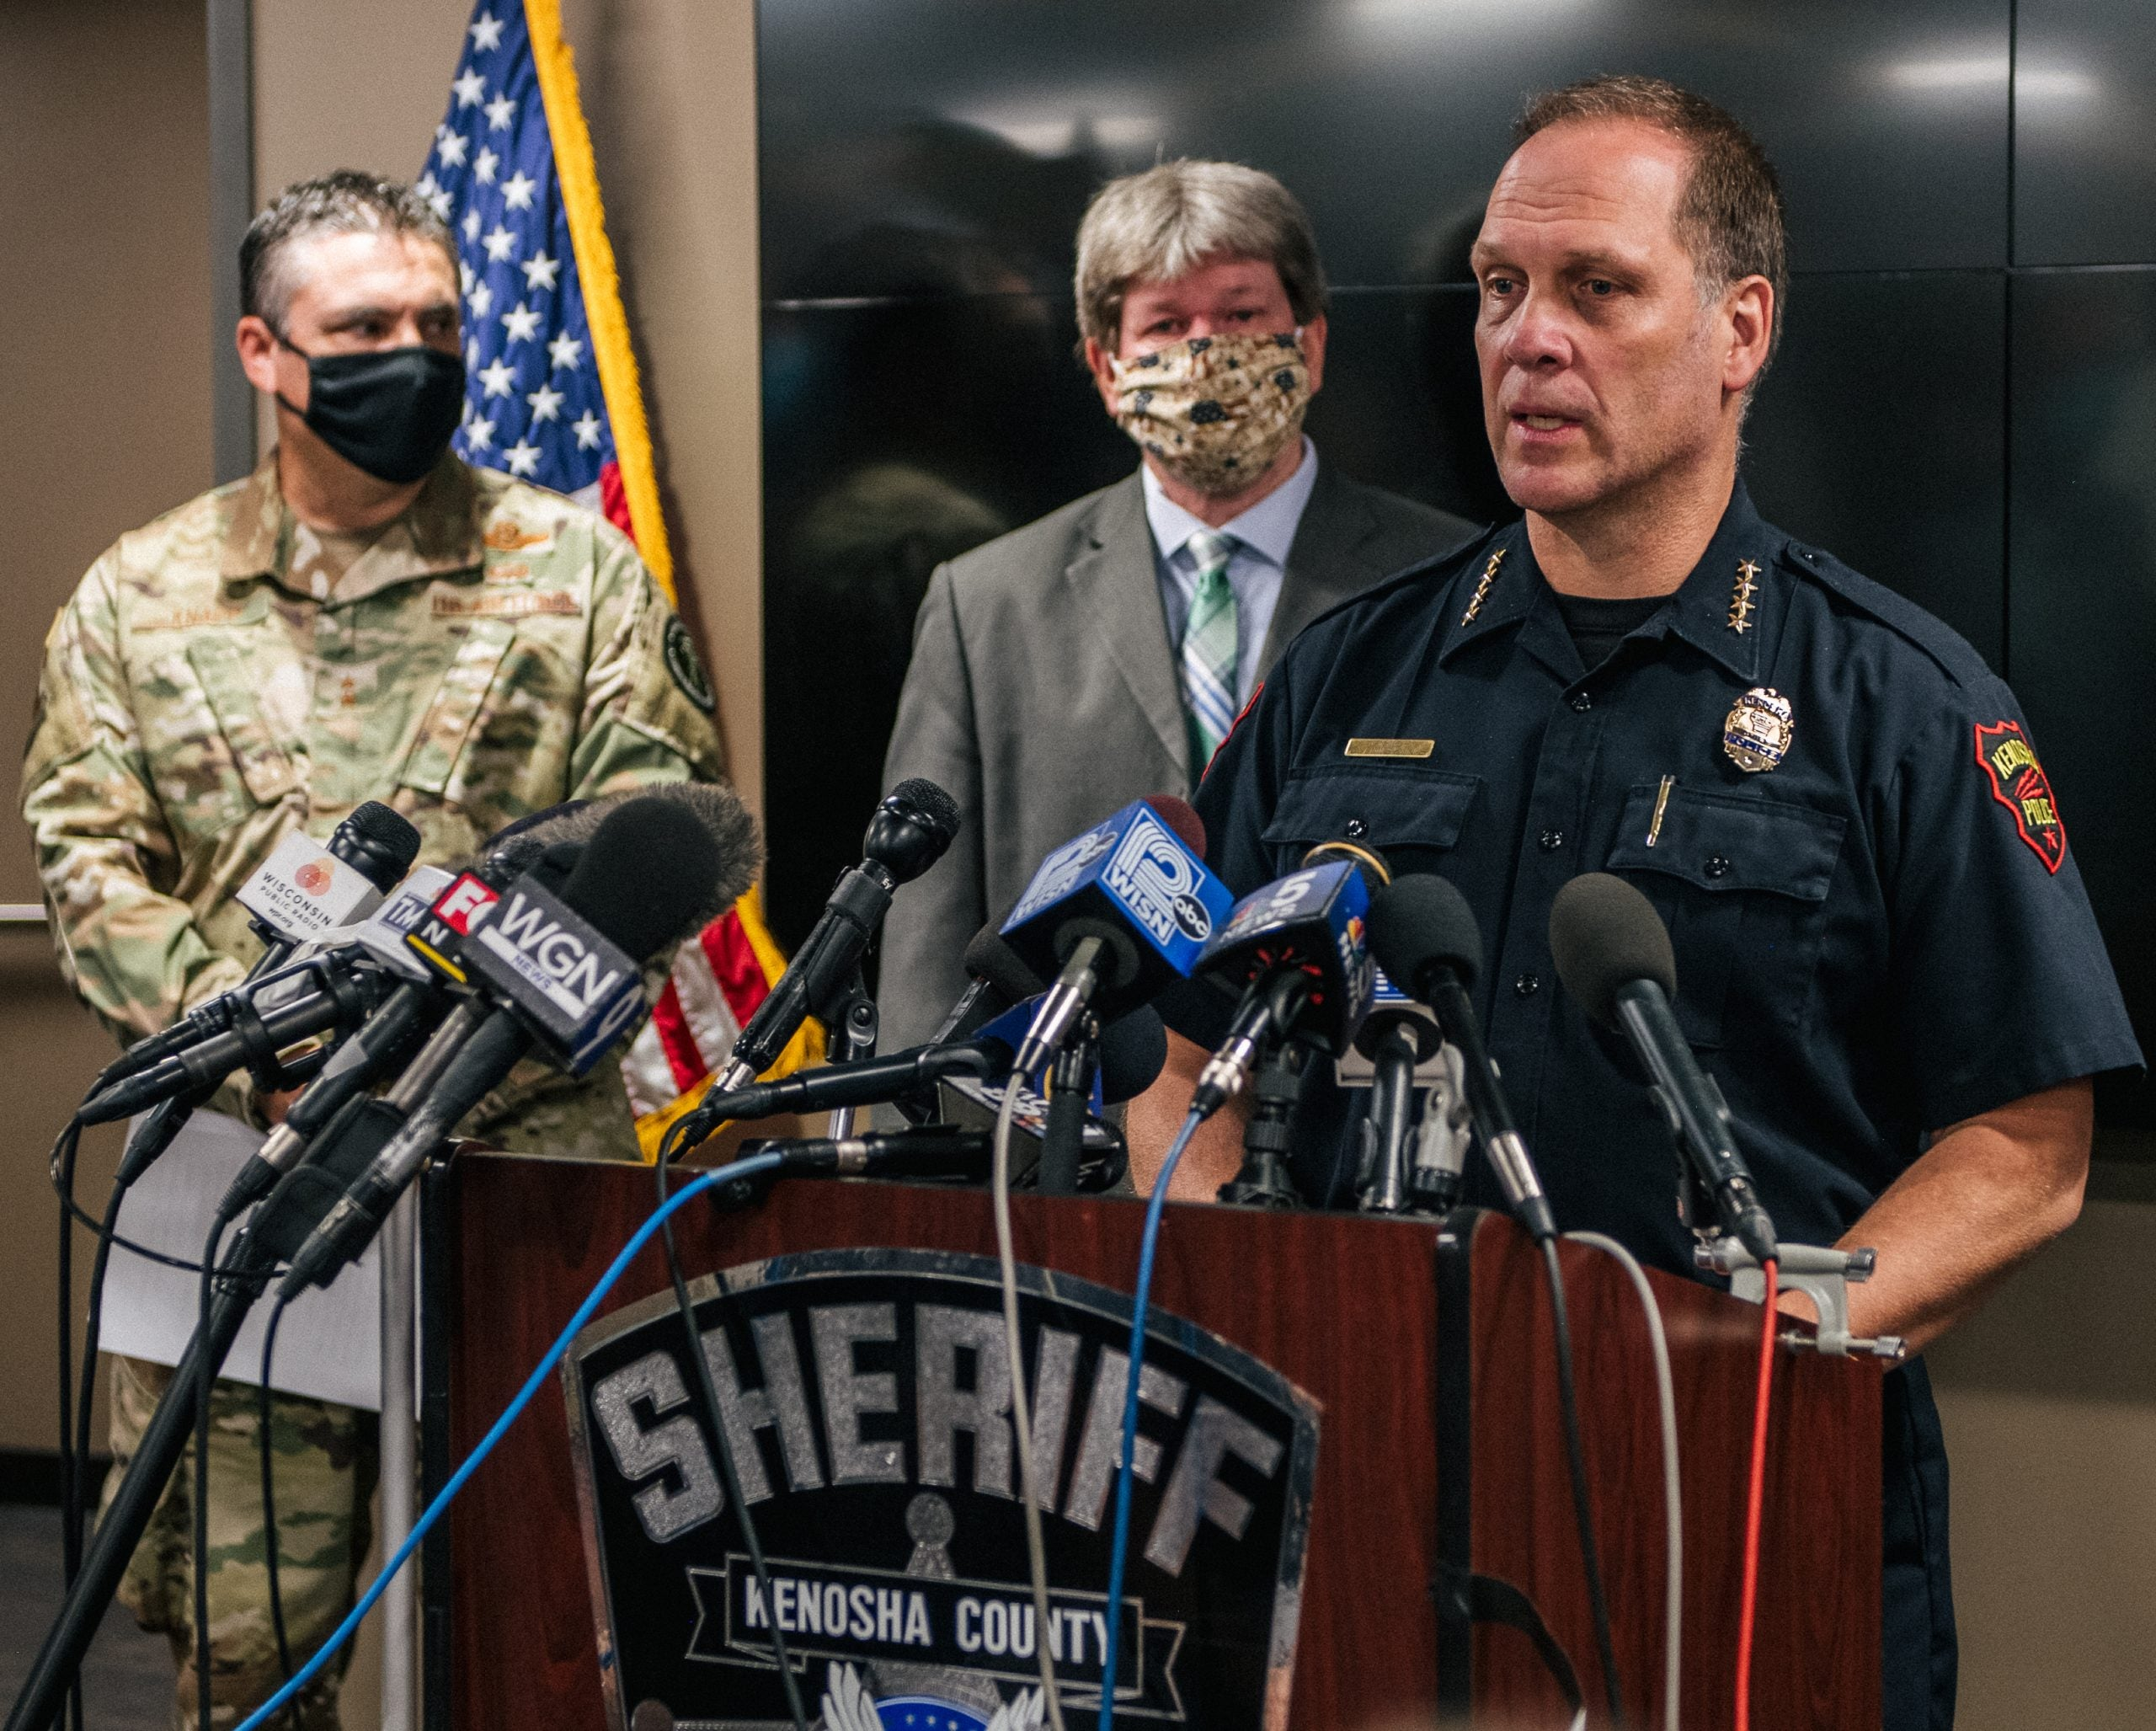 Kenosha Police Chief Says Protesters May Not Have Been Shot If They Followed Curfew